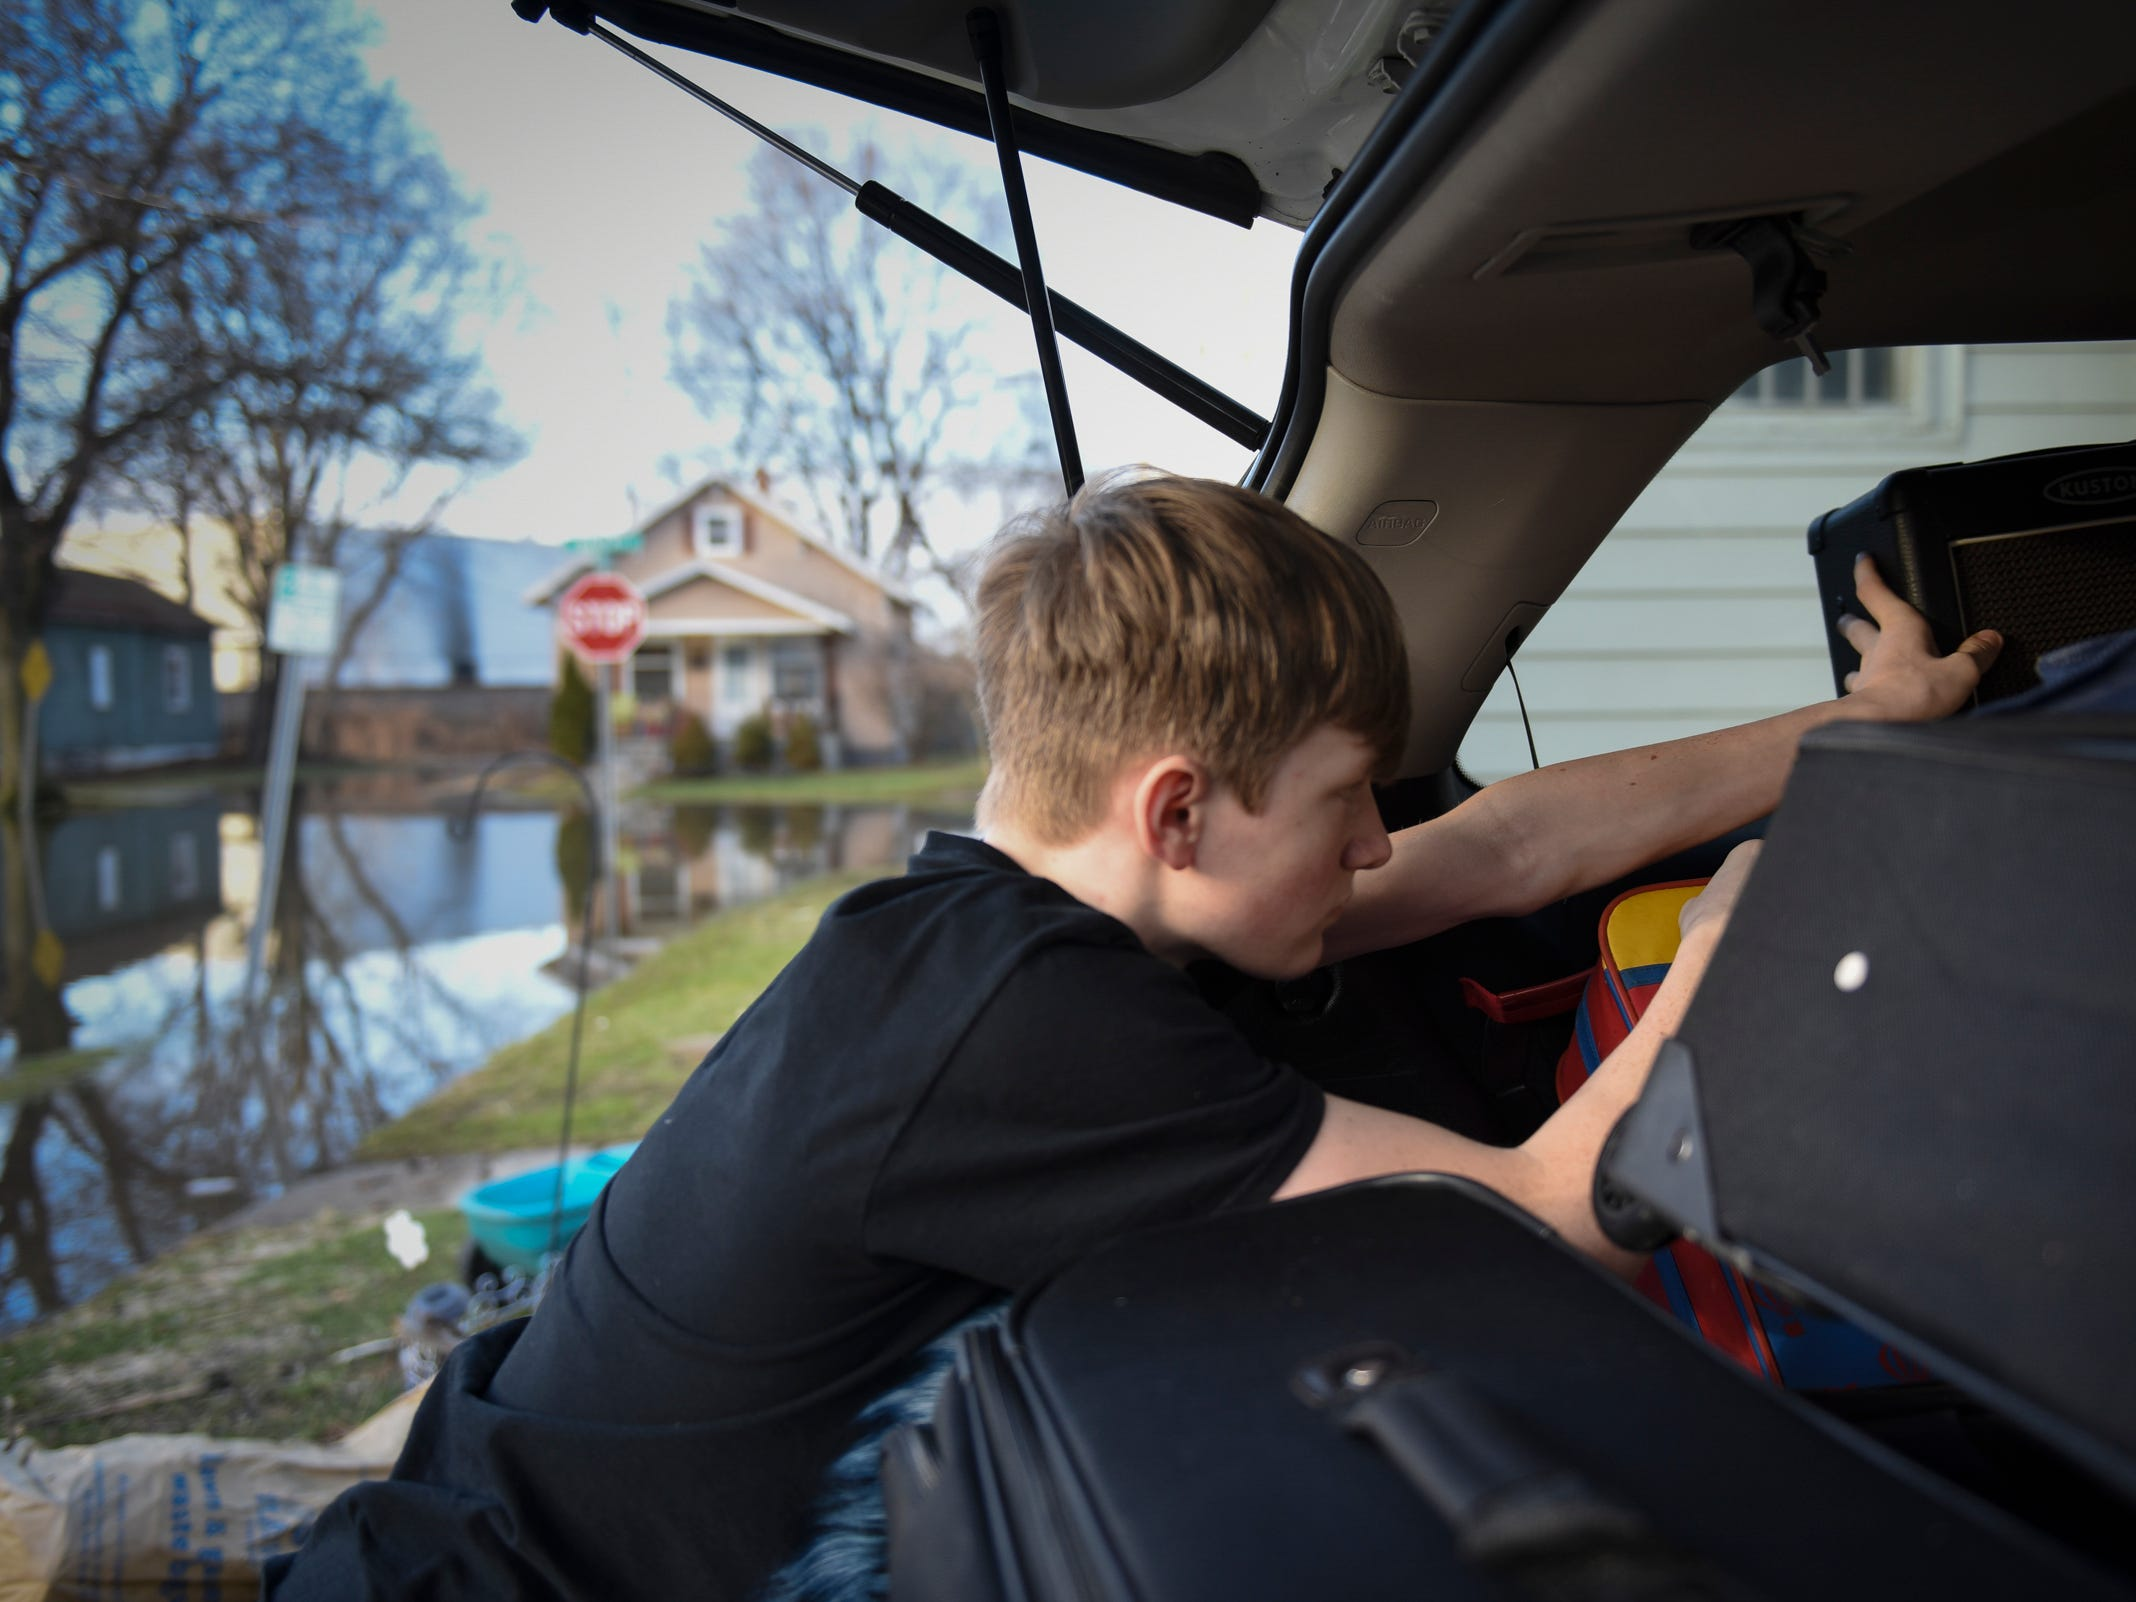 "Chance Mauldin, 14, of Lansing, loads up his bass guitar and amplifier as he and the rest of his family prepare to evacuate their home in the 800 block of Beulah in the Baker-Donora neighborhood., Thursday afternoon, Feb. 22, 2018.  His mom Crystal will be taking him, three sisters, and their dog to a local hotel.  She is trying to turn the flooding tragedy into a ""mini-vacation.""  The kids are excited about swimming, despite the swimmable waters due to flooding within her neighborhood.  Crystal said she's excited about the hot tub."